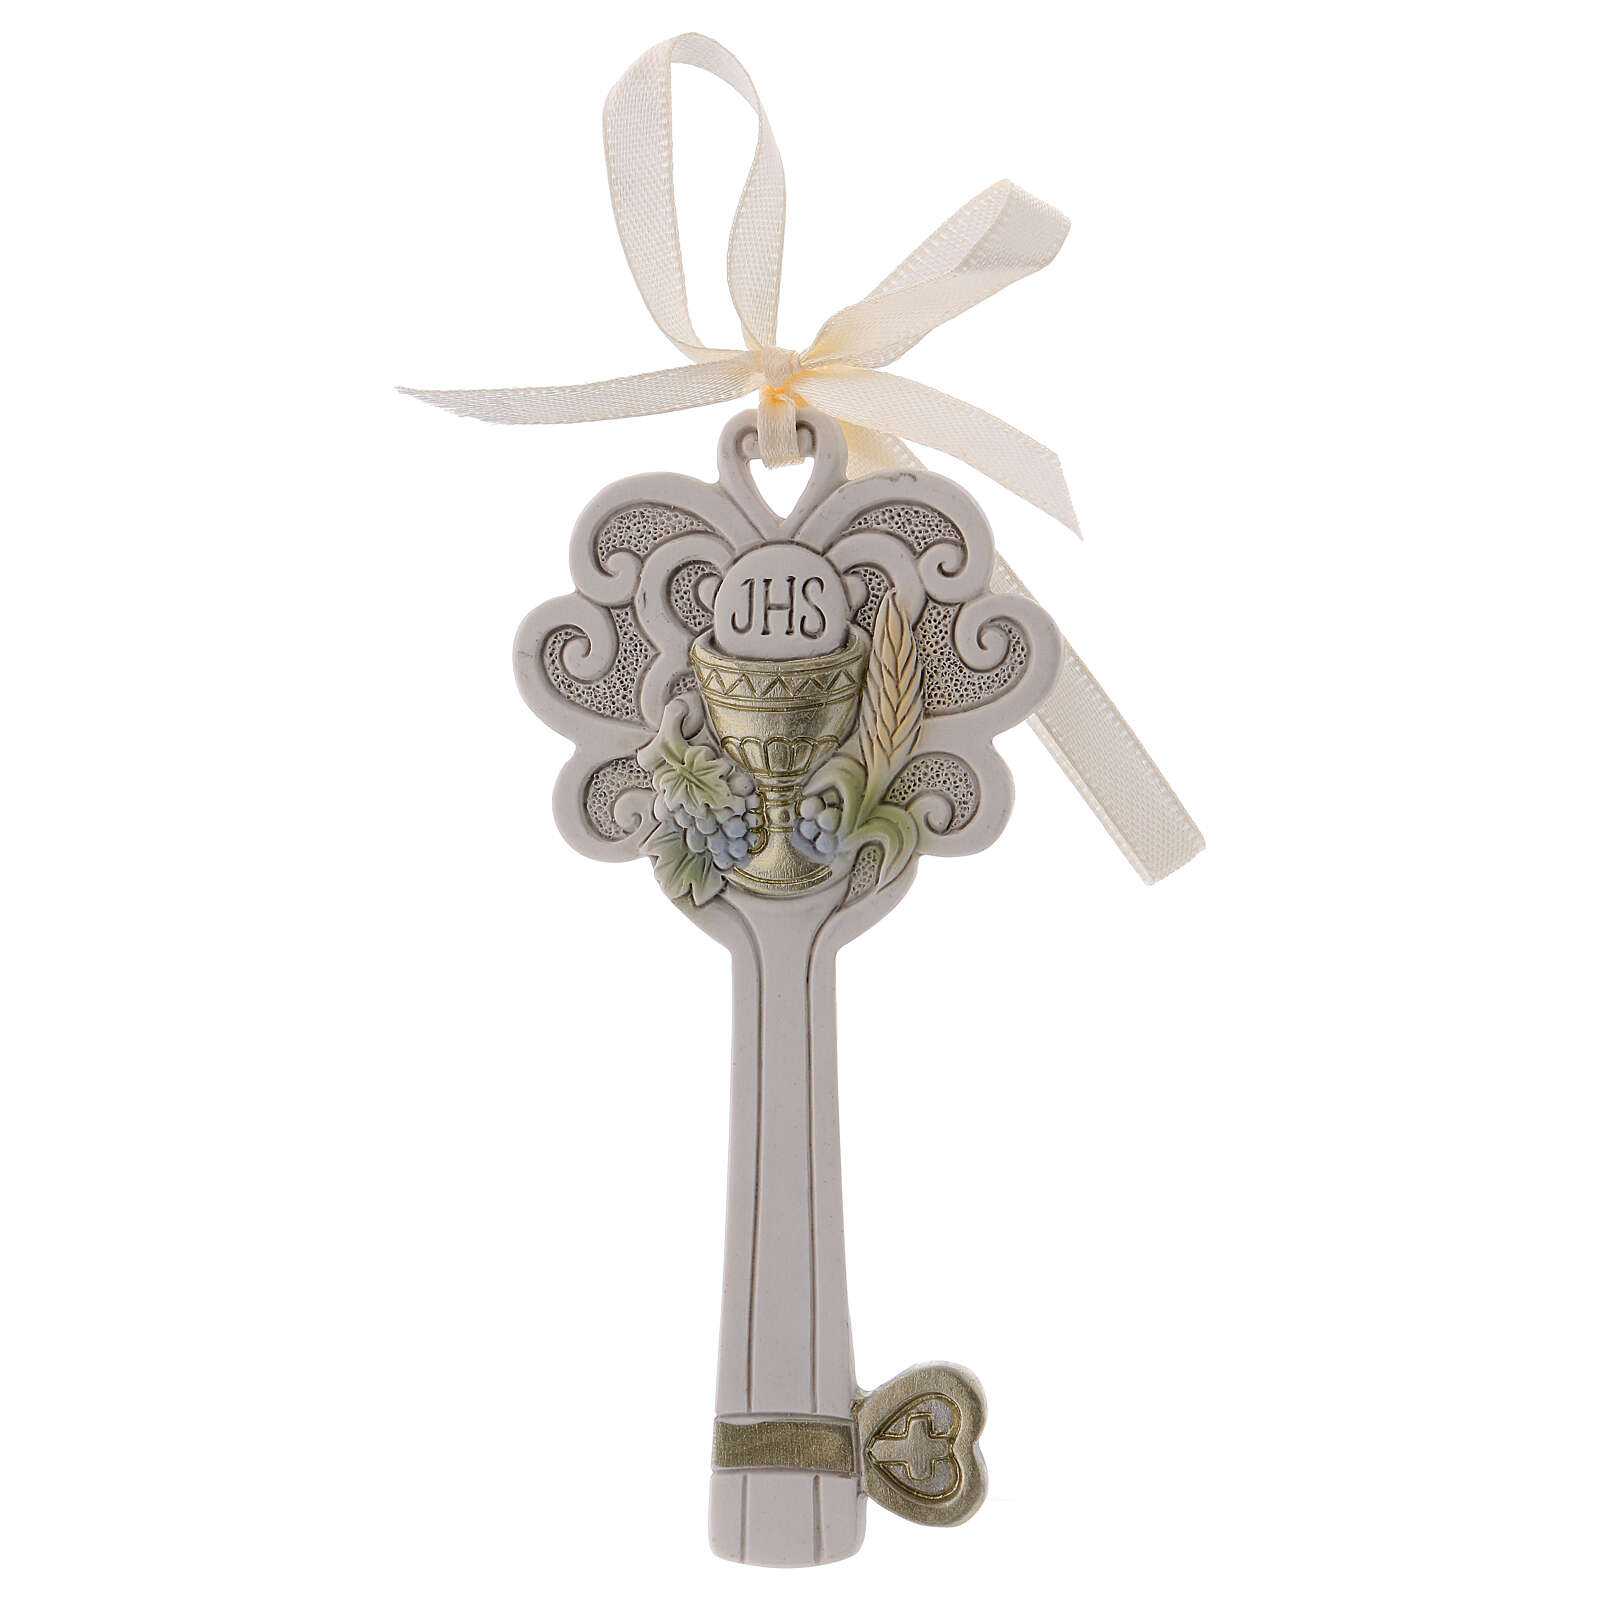 Key shaped favor Holy Communion 4 in resin 3